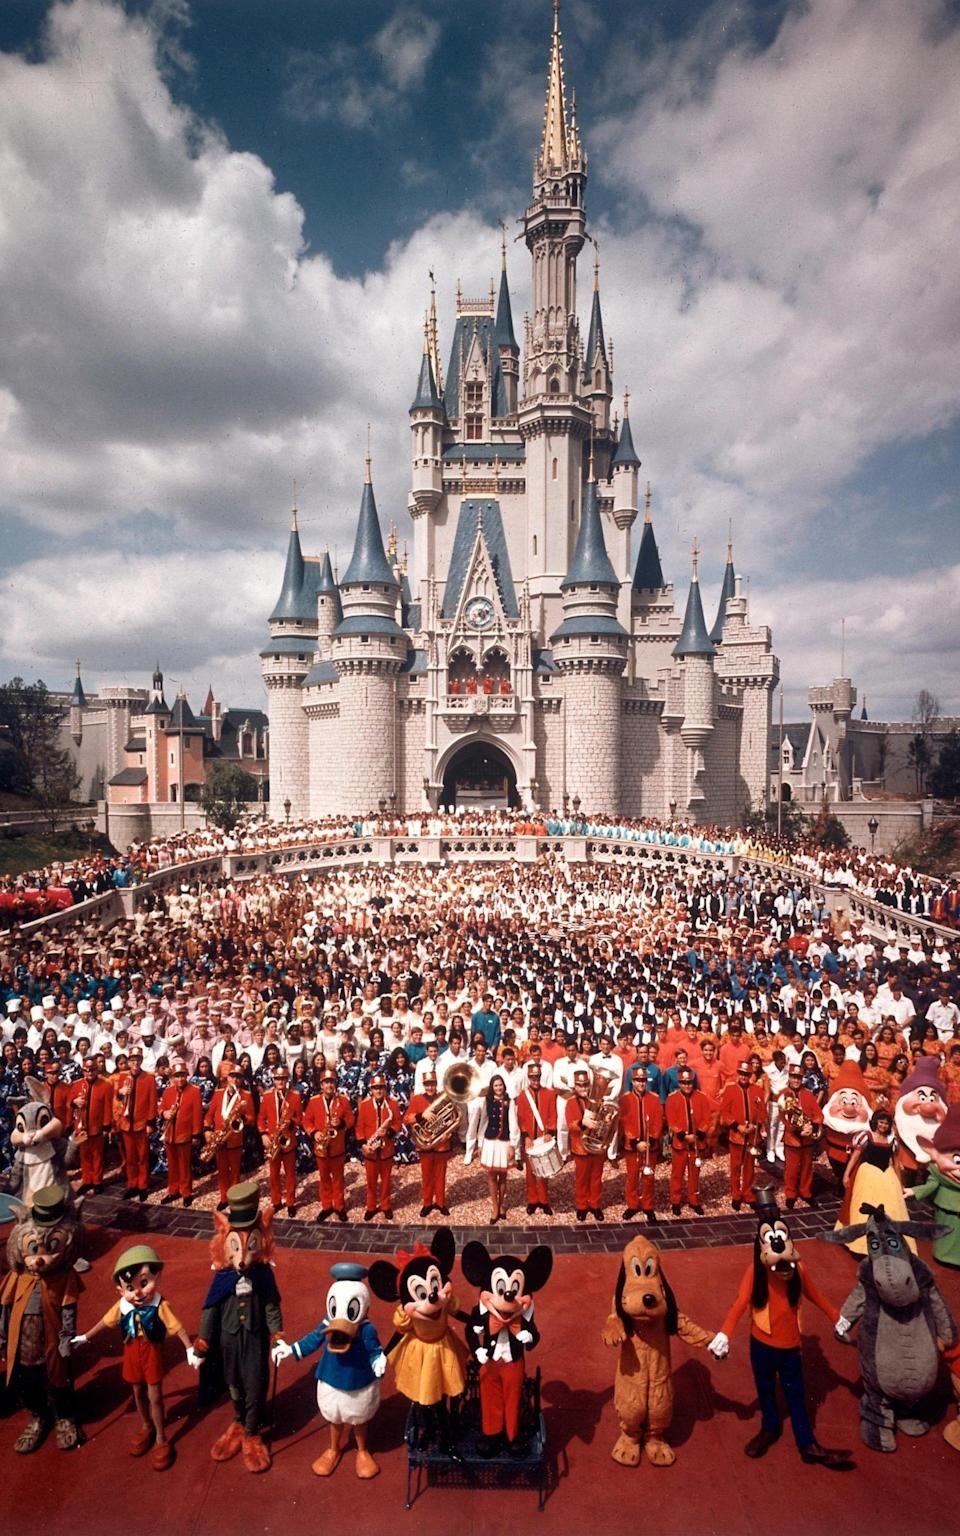 The grand opening of Walt Disney World in 1971